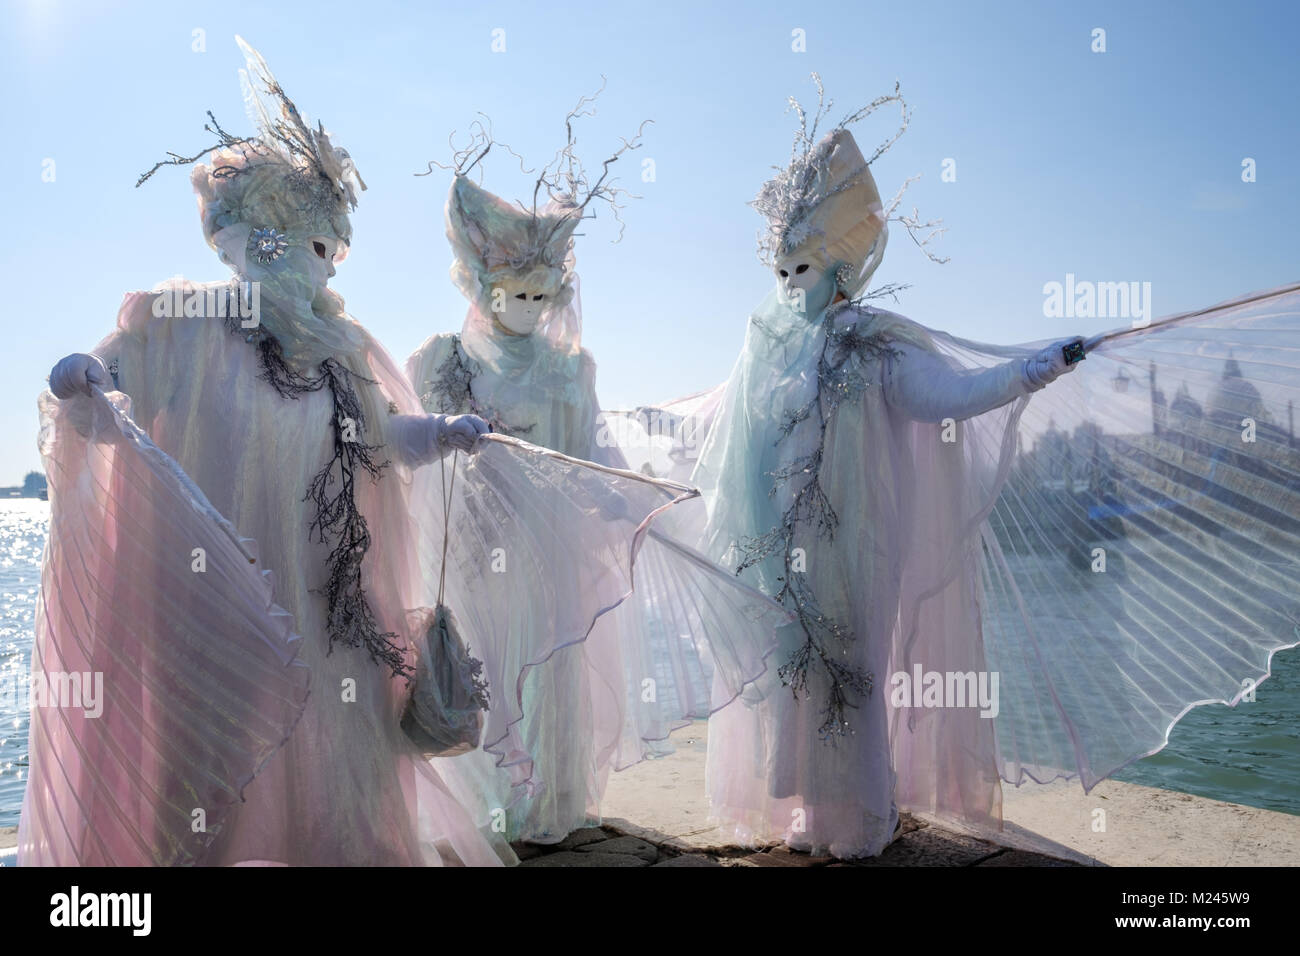 Venice Carnival 2018. After the opening event of the flying angel, Masks posing near Piazza San Marco. Venice, Italy. - Stock Image